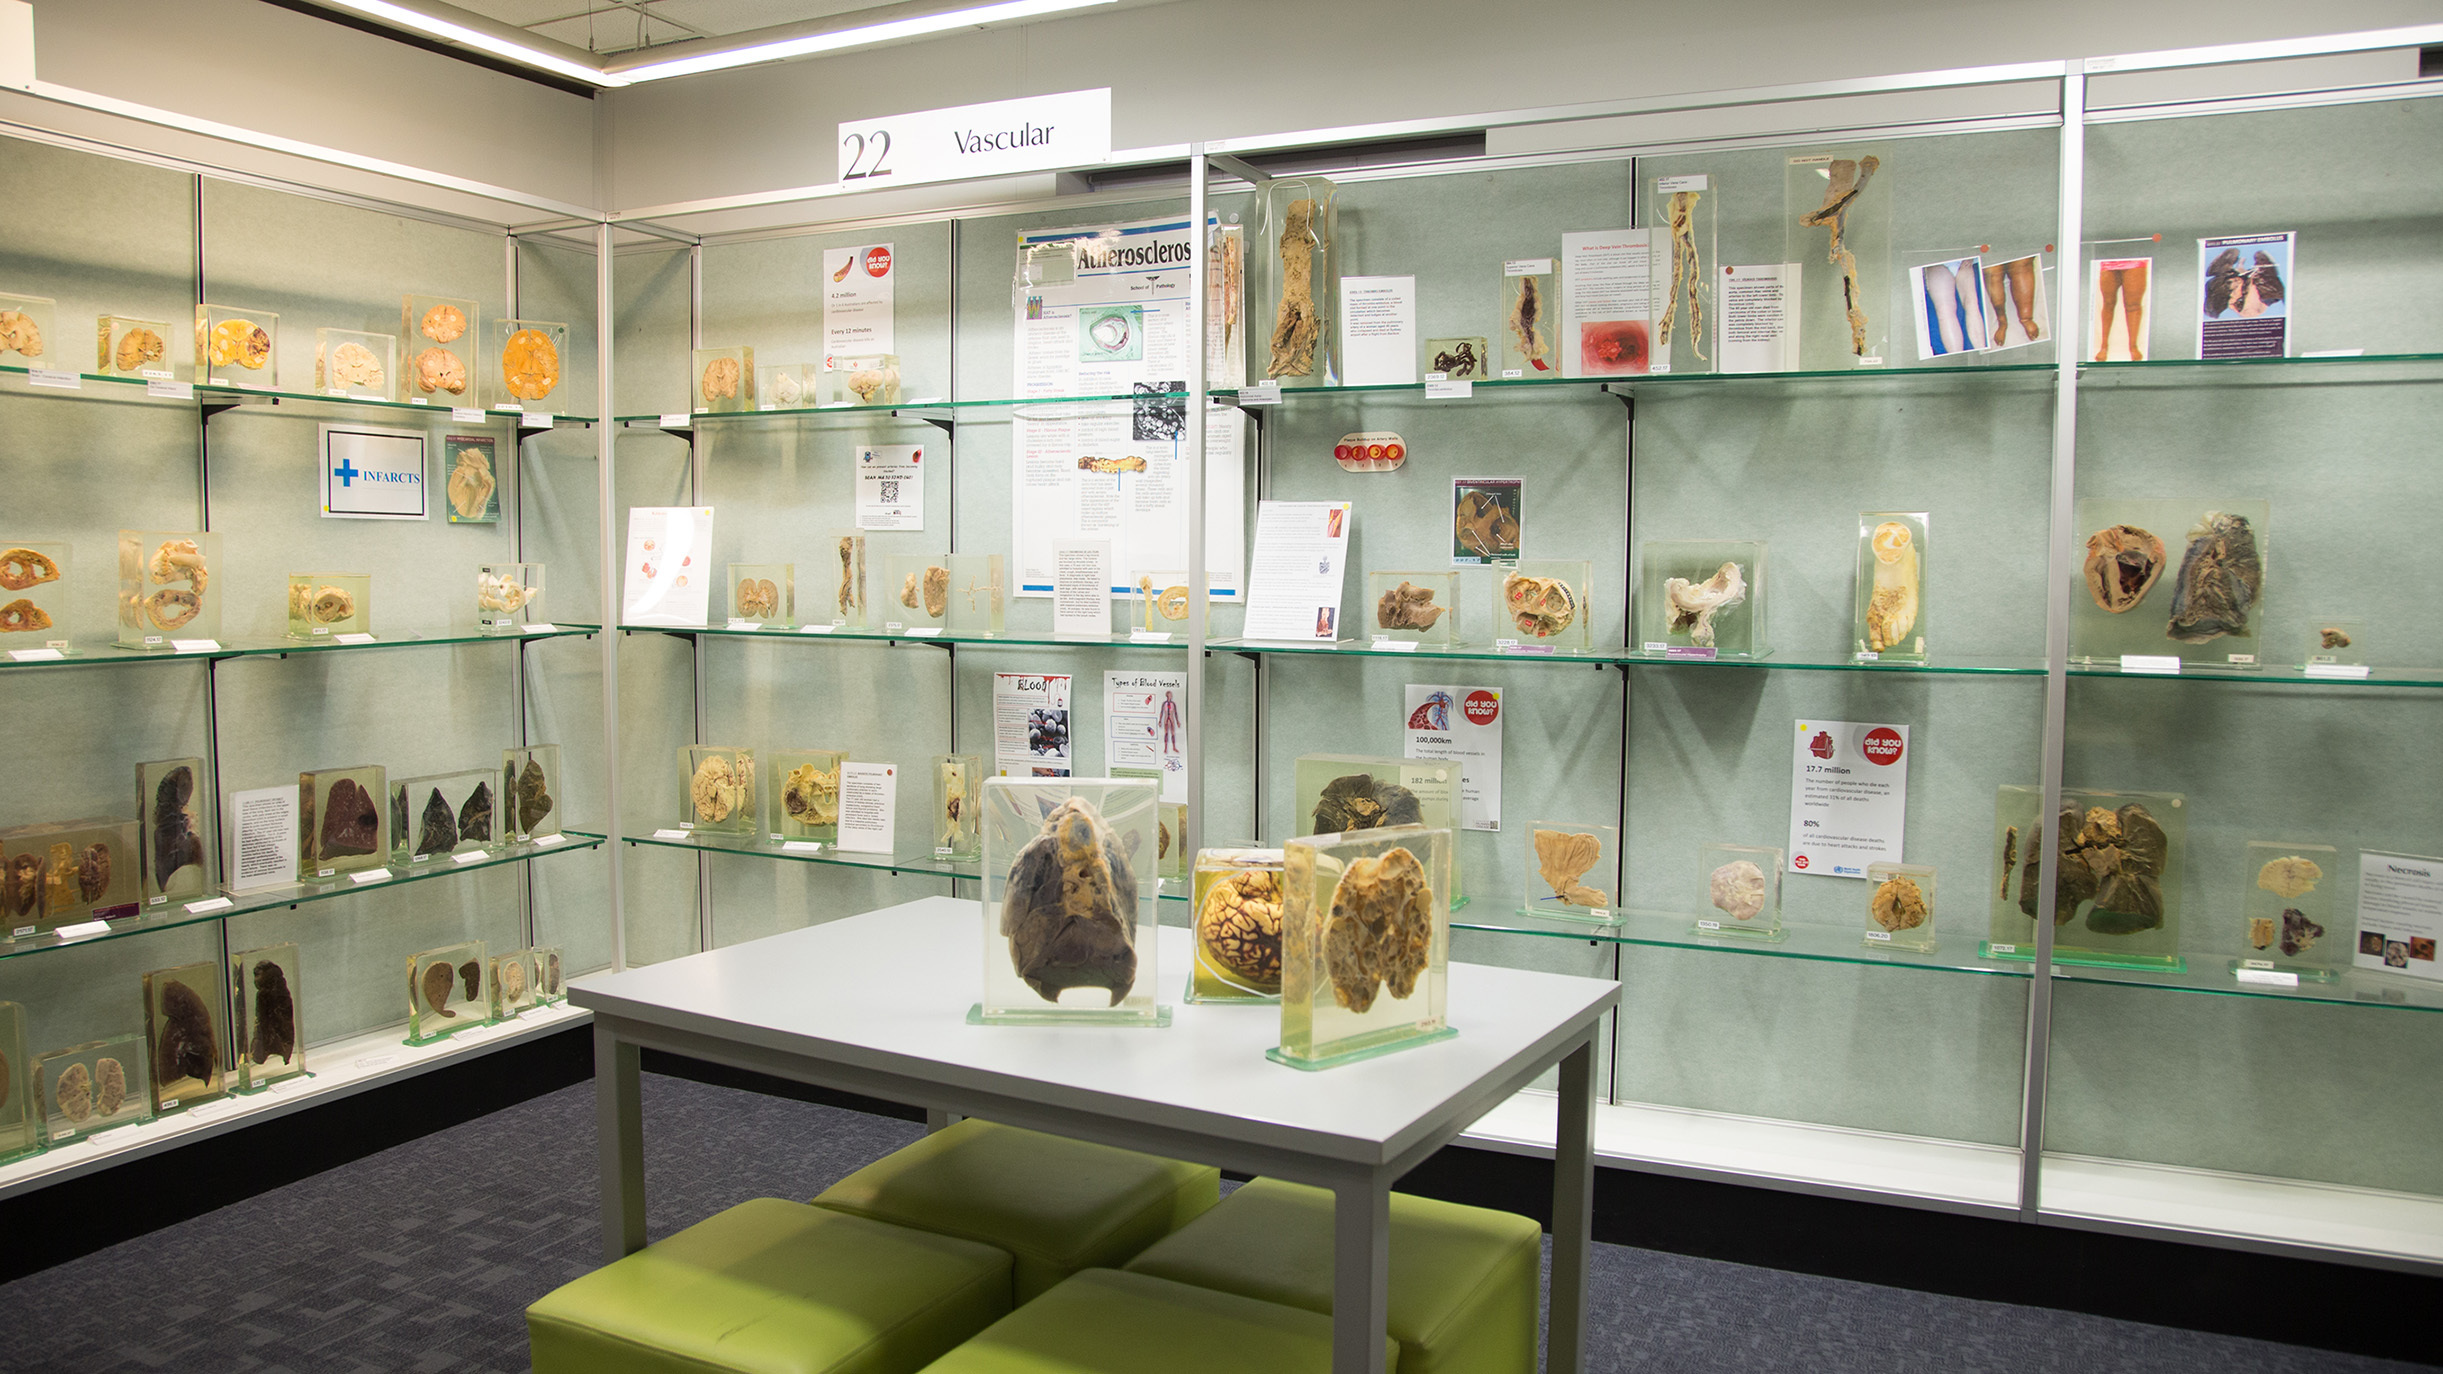 A view inside a museum filled with human specimens